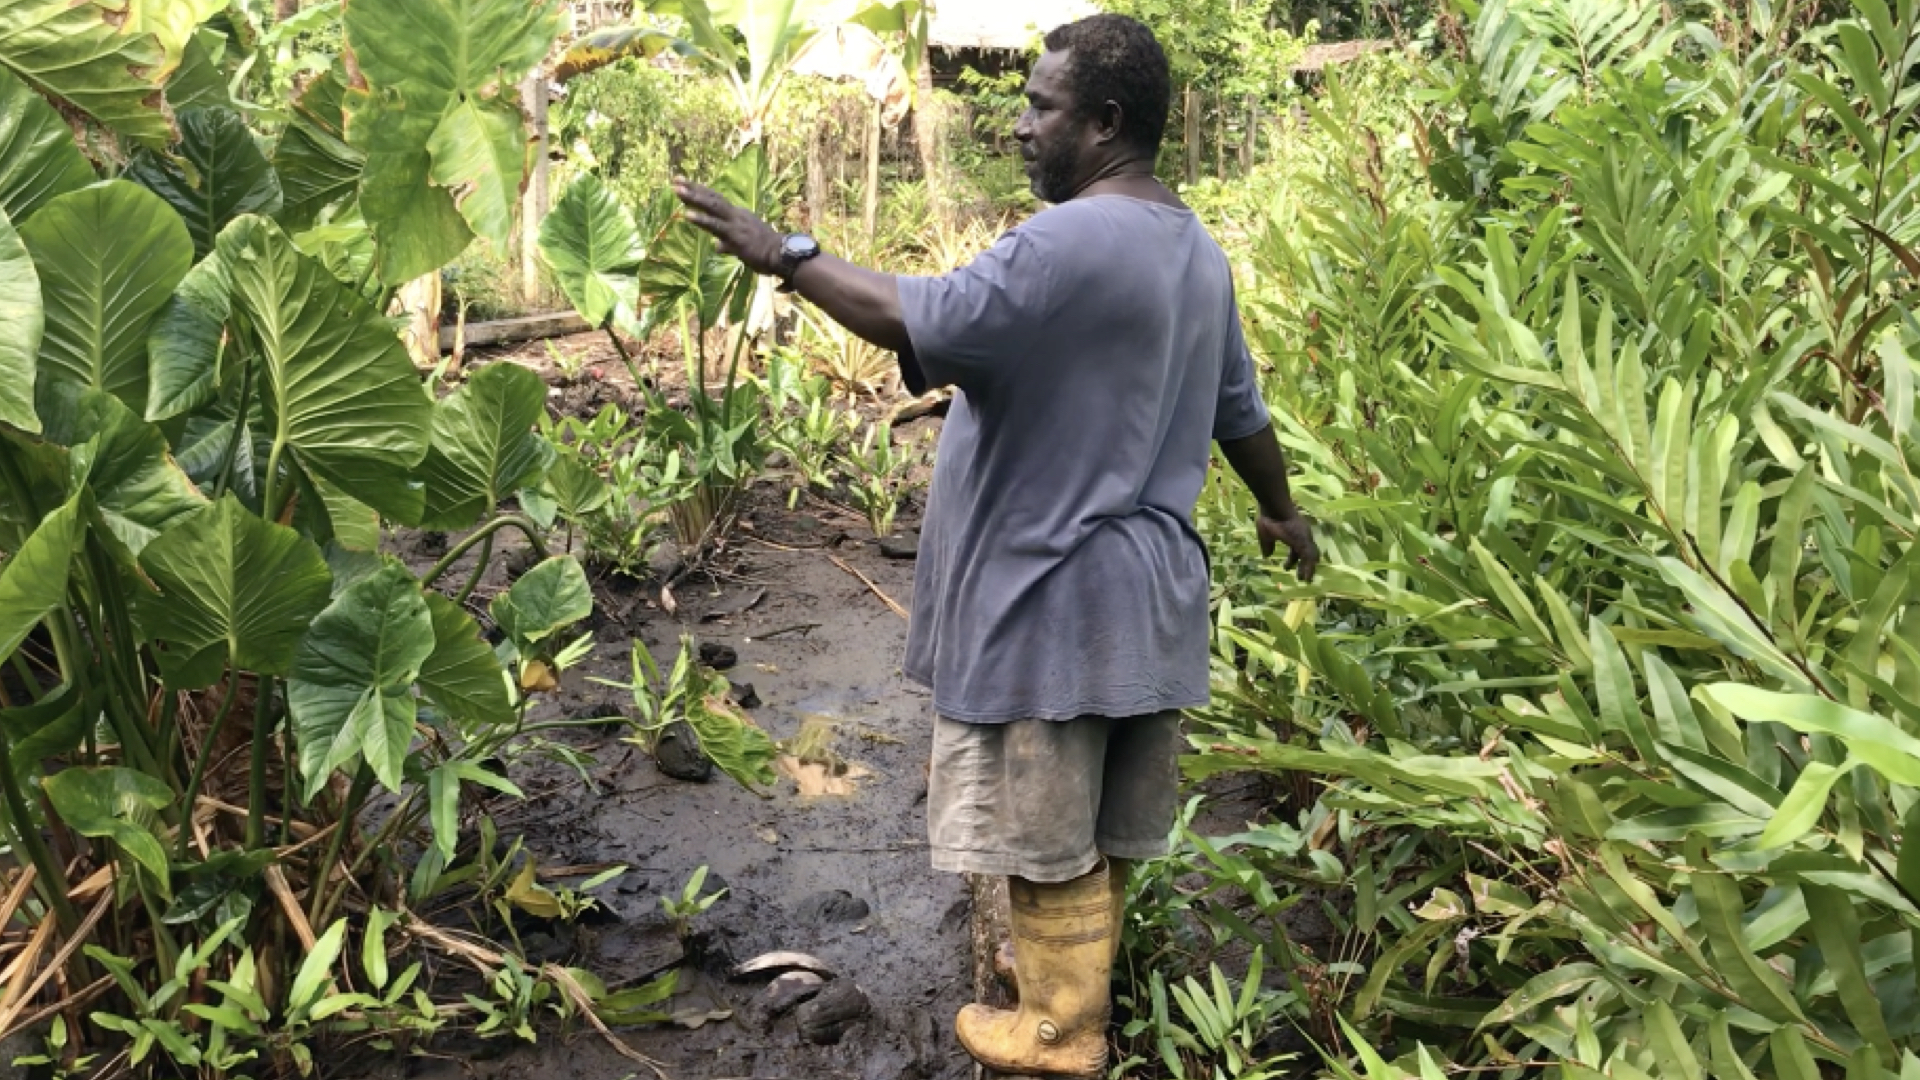 To find enough space for his food production, Jimmy has moved into the swamps on his island to raise chickens and ducks for extra income and their nitrogen-rich manure.